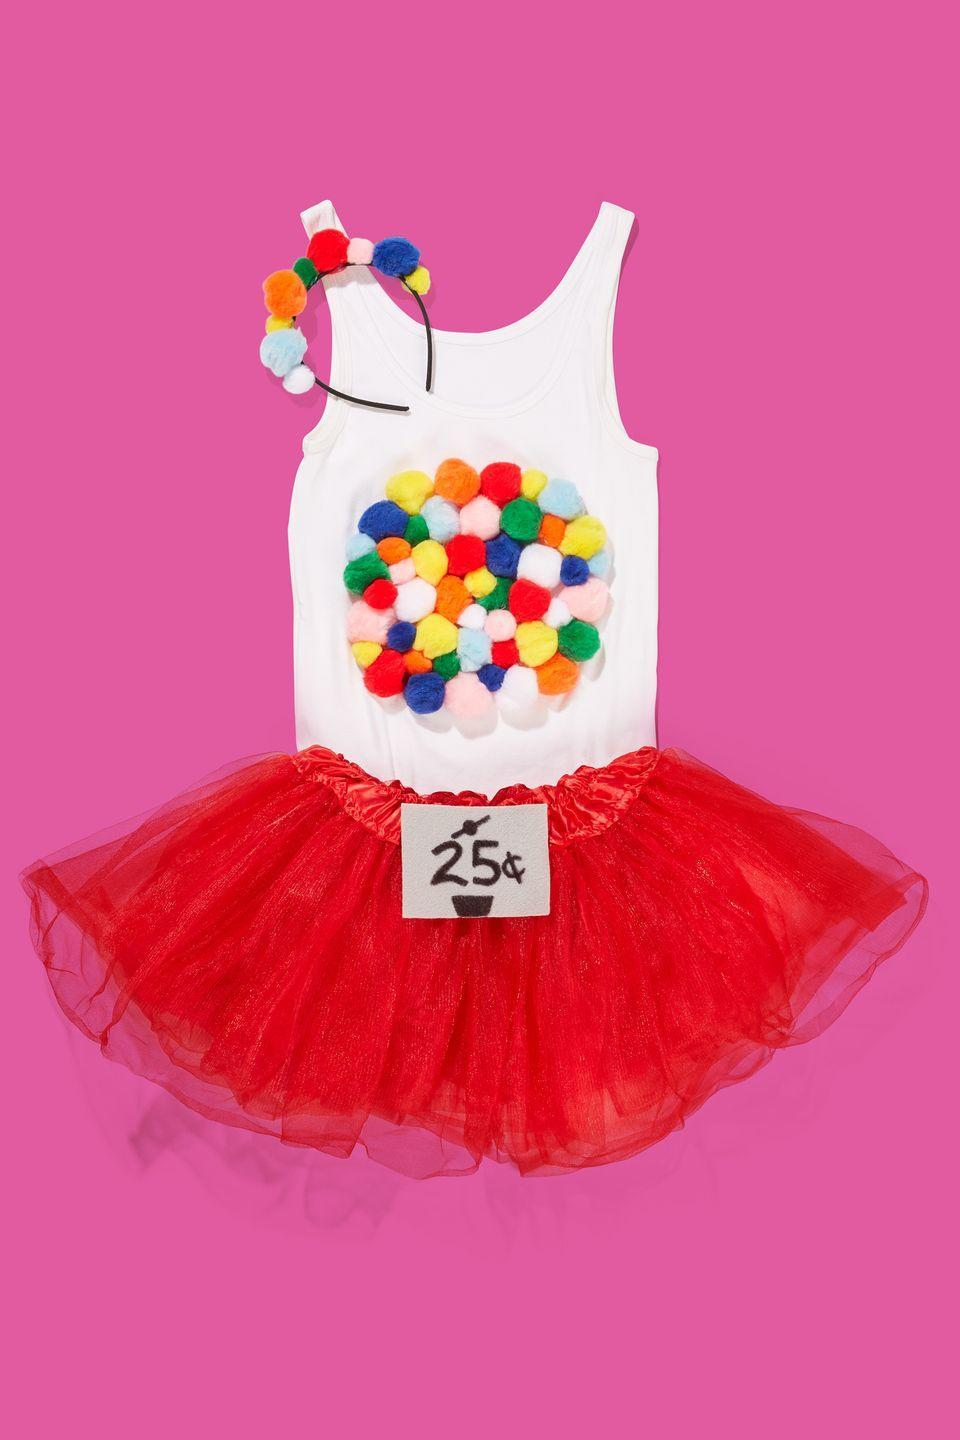 """<p>Glue multi-colored pom-poms onto a white tank top and a black headband. Add a DIY 25¢ sign to a red skirt so everyone gets the picture.</p><p><a class=""""link rapid-noclick-resp"""" href=""""https://www.amazon.com/Pack-Crafters-Square-Count-Multi-Color/dp/B00T6OQ6I6?tag=syn-yahoo-20&ascsubtag=%5Bartid%7C10070.g.490%5Bsrc%7Cyahoo-us"""" rel=""""nofollow noopener"""" target=""""_blank"""" data-ylk=""""slk:SHOP MULTICOLOR POM-POMS"""">SHOP MULTICOLOR POM-POMS</a> </p>"""